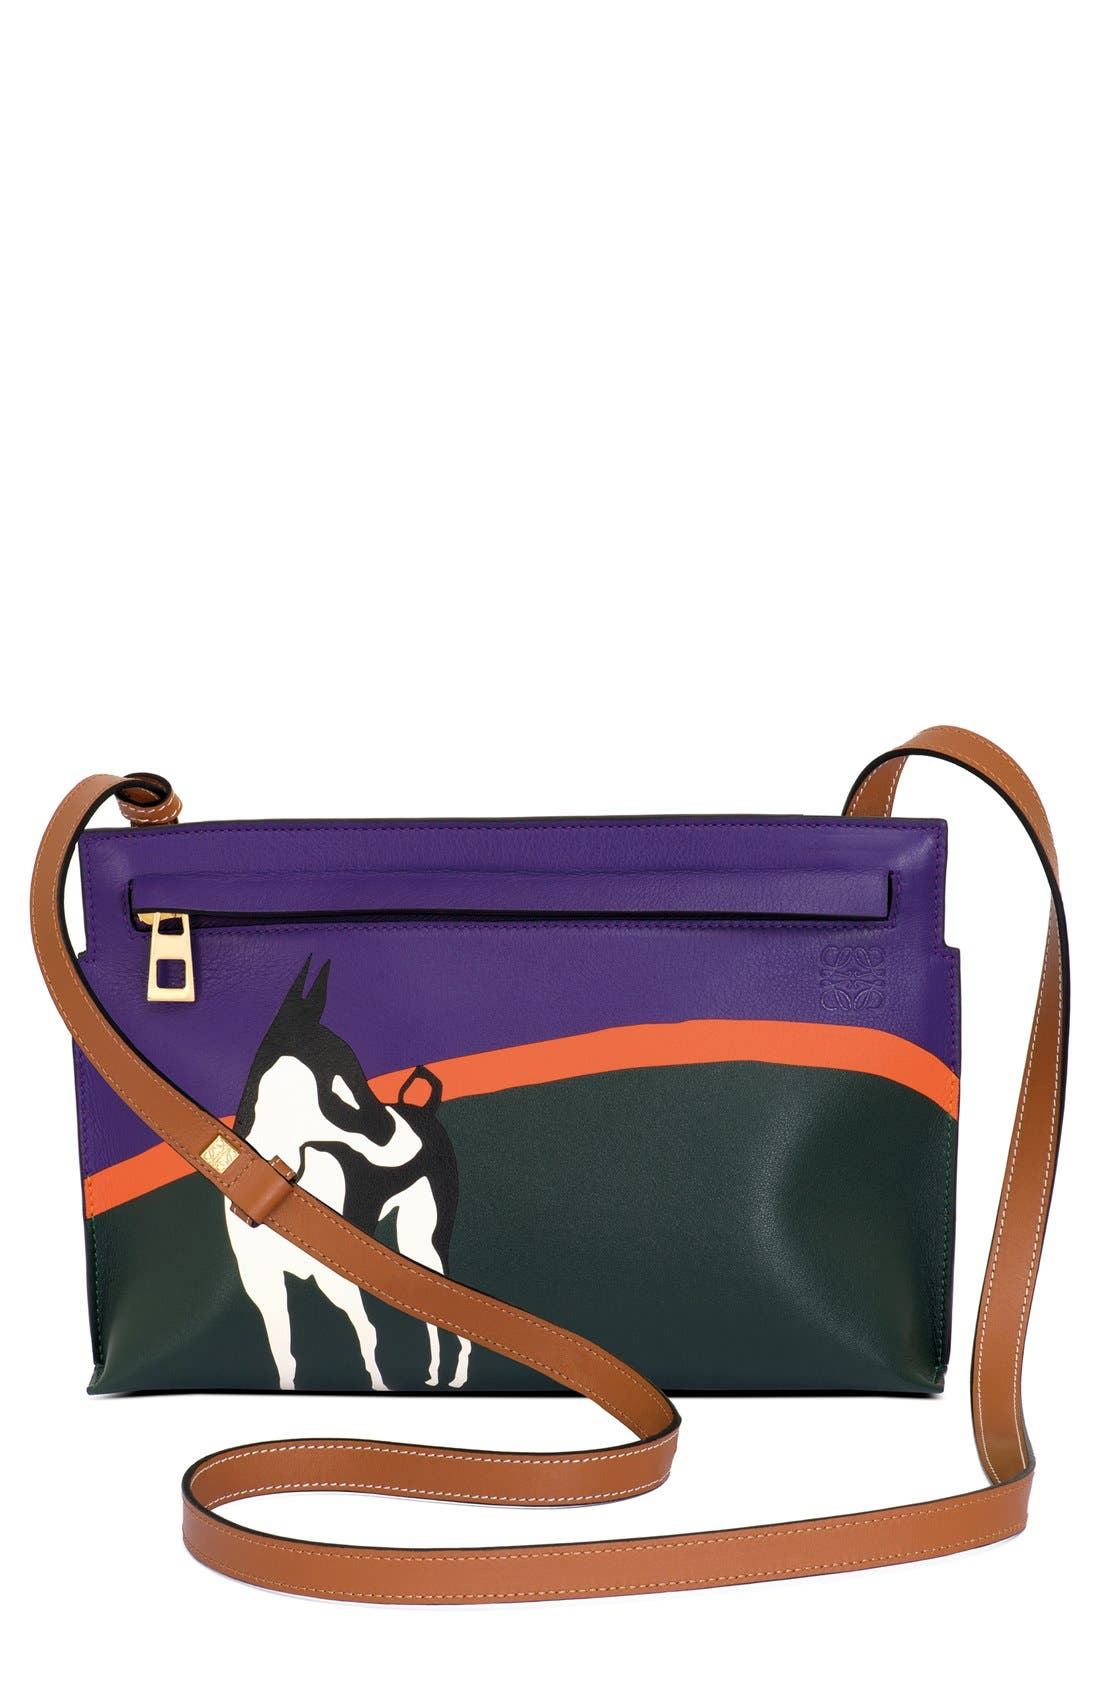 Main Image - Loewe 'Lost Dog - Medium T' Calfskin Leather Crossbody Pouch